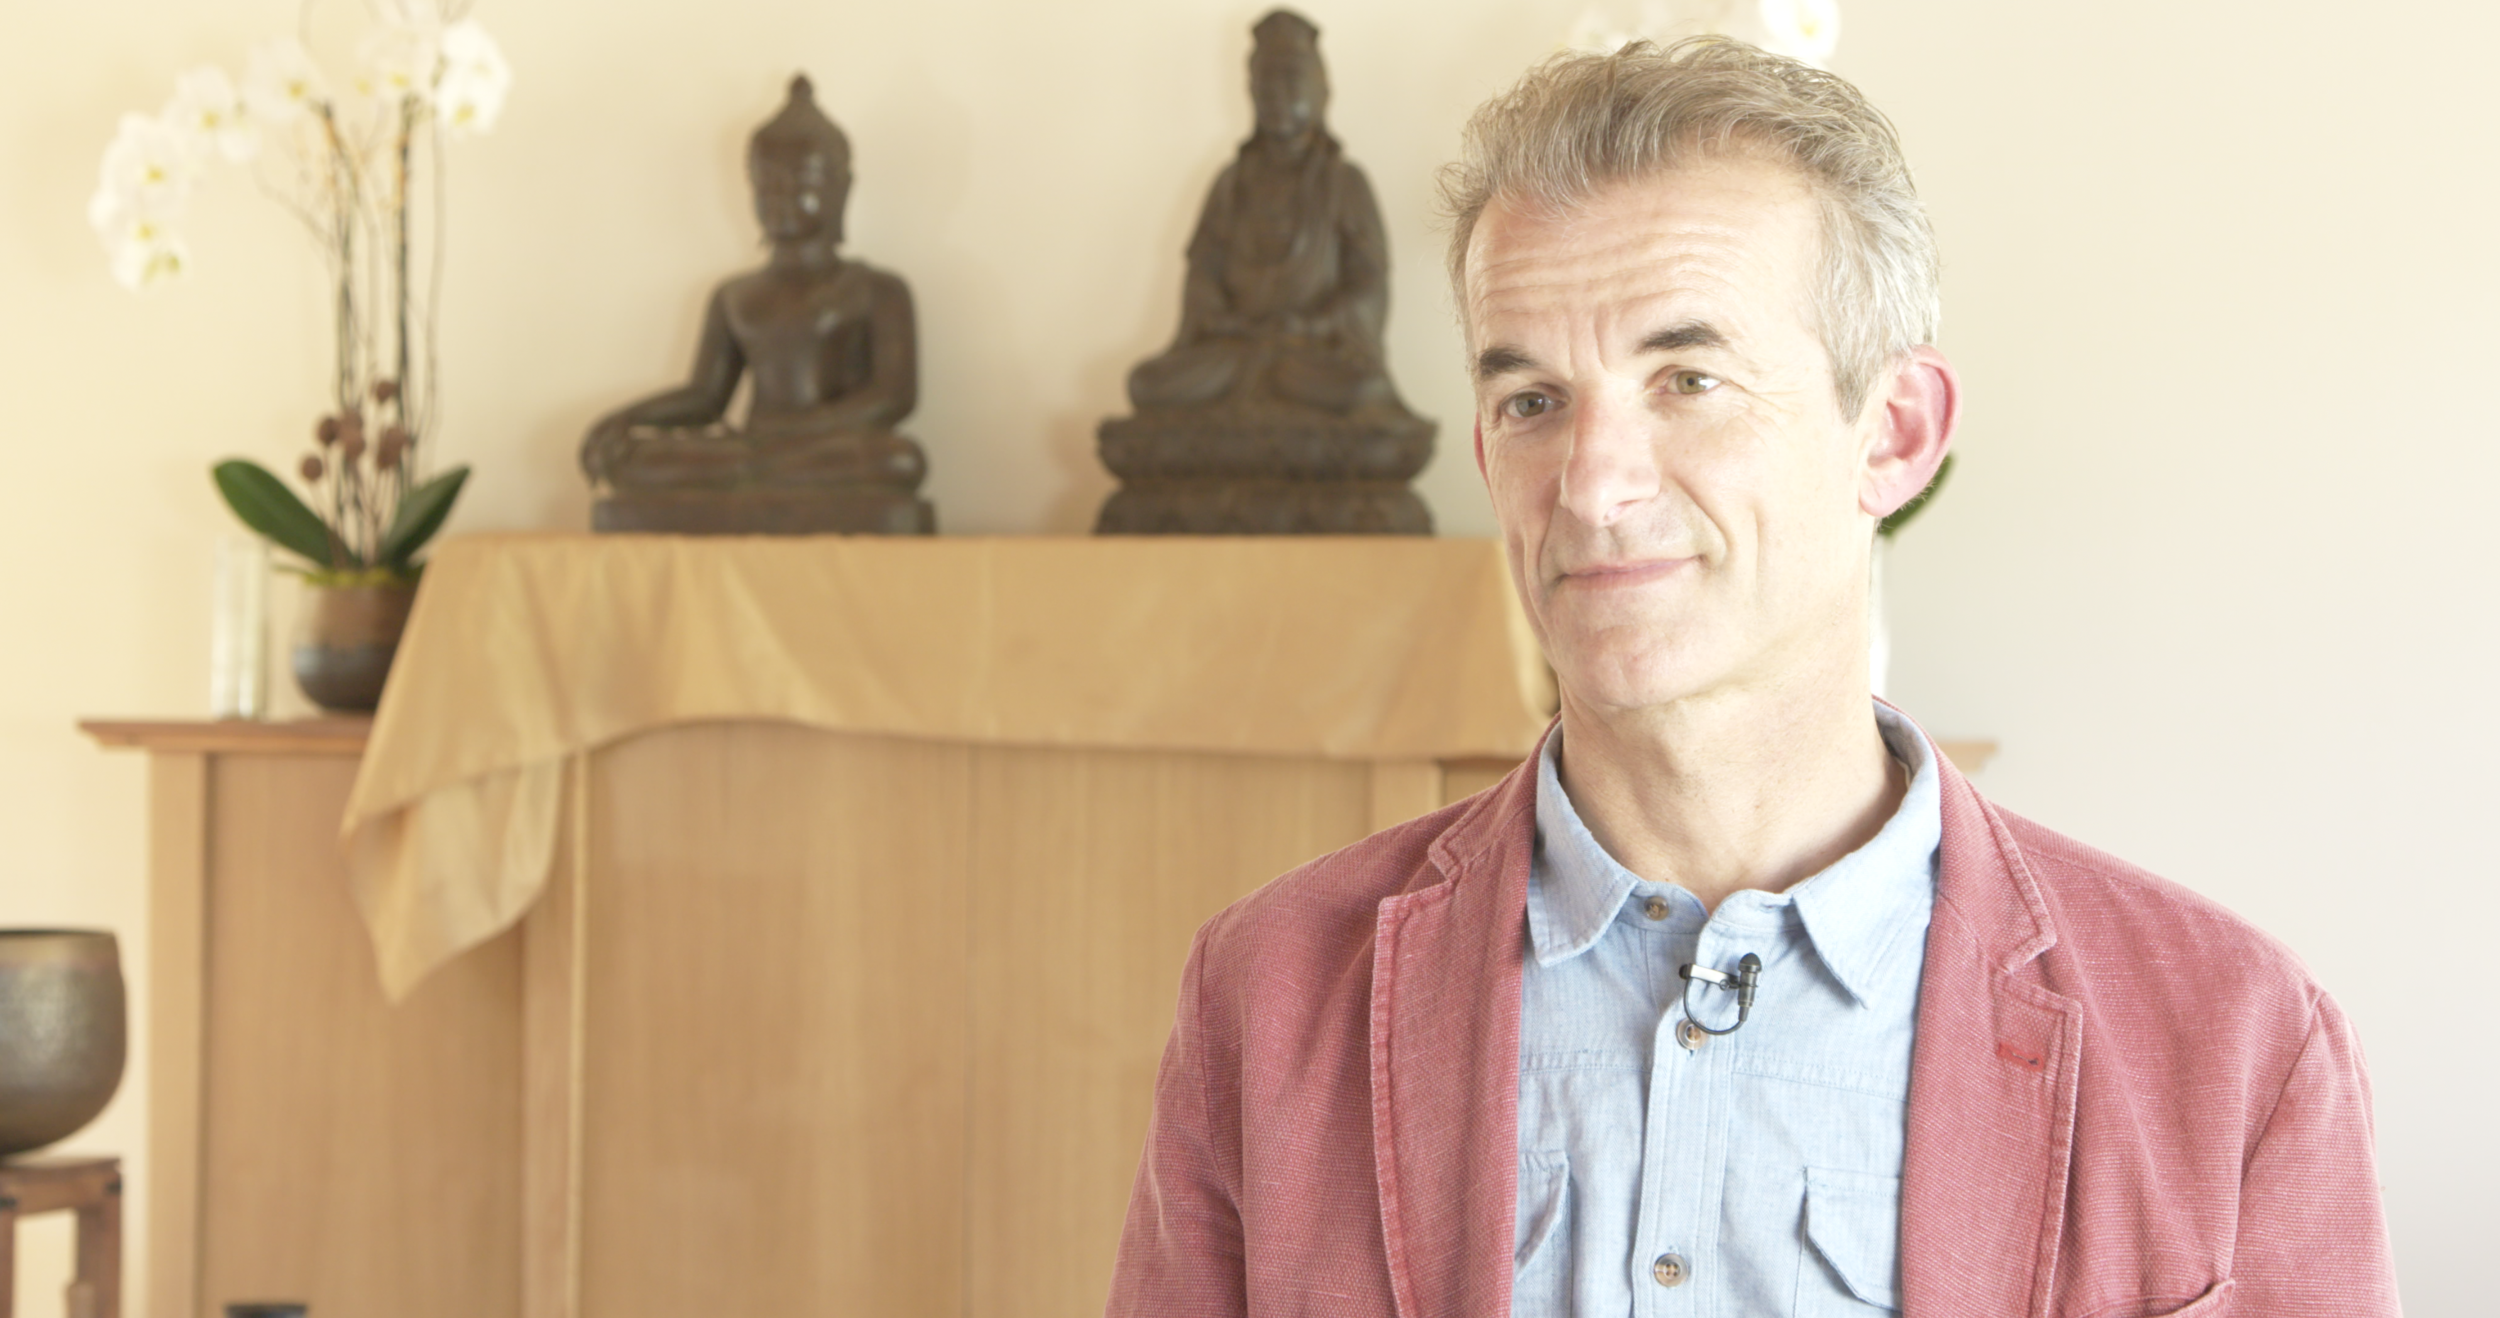 Mark Coleman - Mark Coleman holds a MA in Clinical Psychology and works individually with people as an executive coach and consultant, drawing on his extensive experience in working with people as a therapist. Mark is a senior meditation teacher at Spirit Rock Meditation Center, a renowned leader in the mindfulness field, and teaches regularly with pioneering teachers such as Jack Kornfield and Sharon Salzburg. He has been teaching mindfulness workshops and meditation retreats in six continents for the past fifteen years.He is writer and author of Make Peace with Your Mind: How Mindfulness and Compassion Can Help Free You from the Inner Critic, and Awake in the Wild: Mindfulness in Nature as a Path of Self-Discovery.